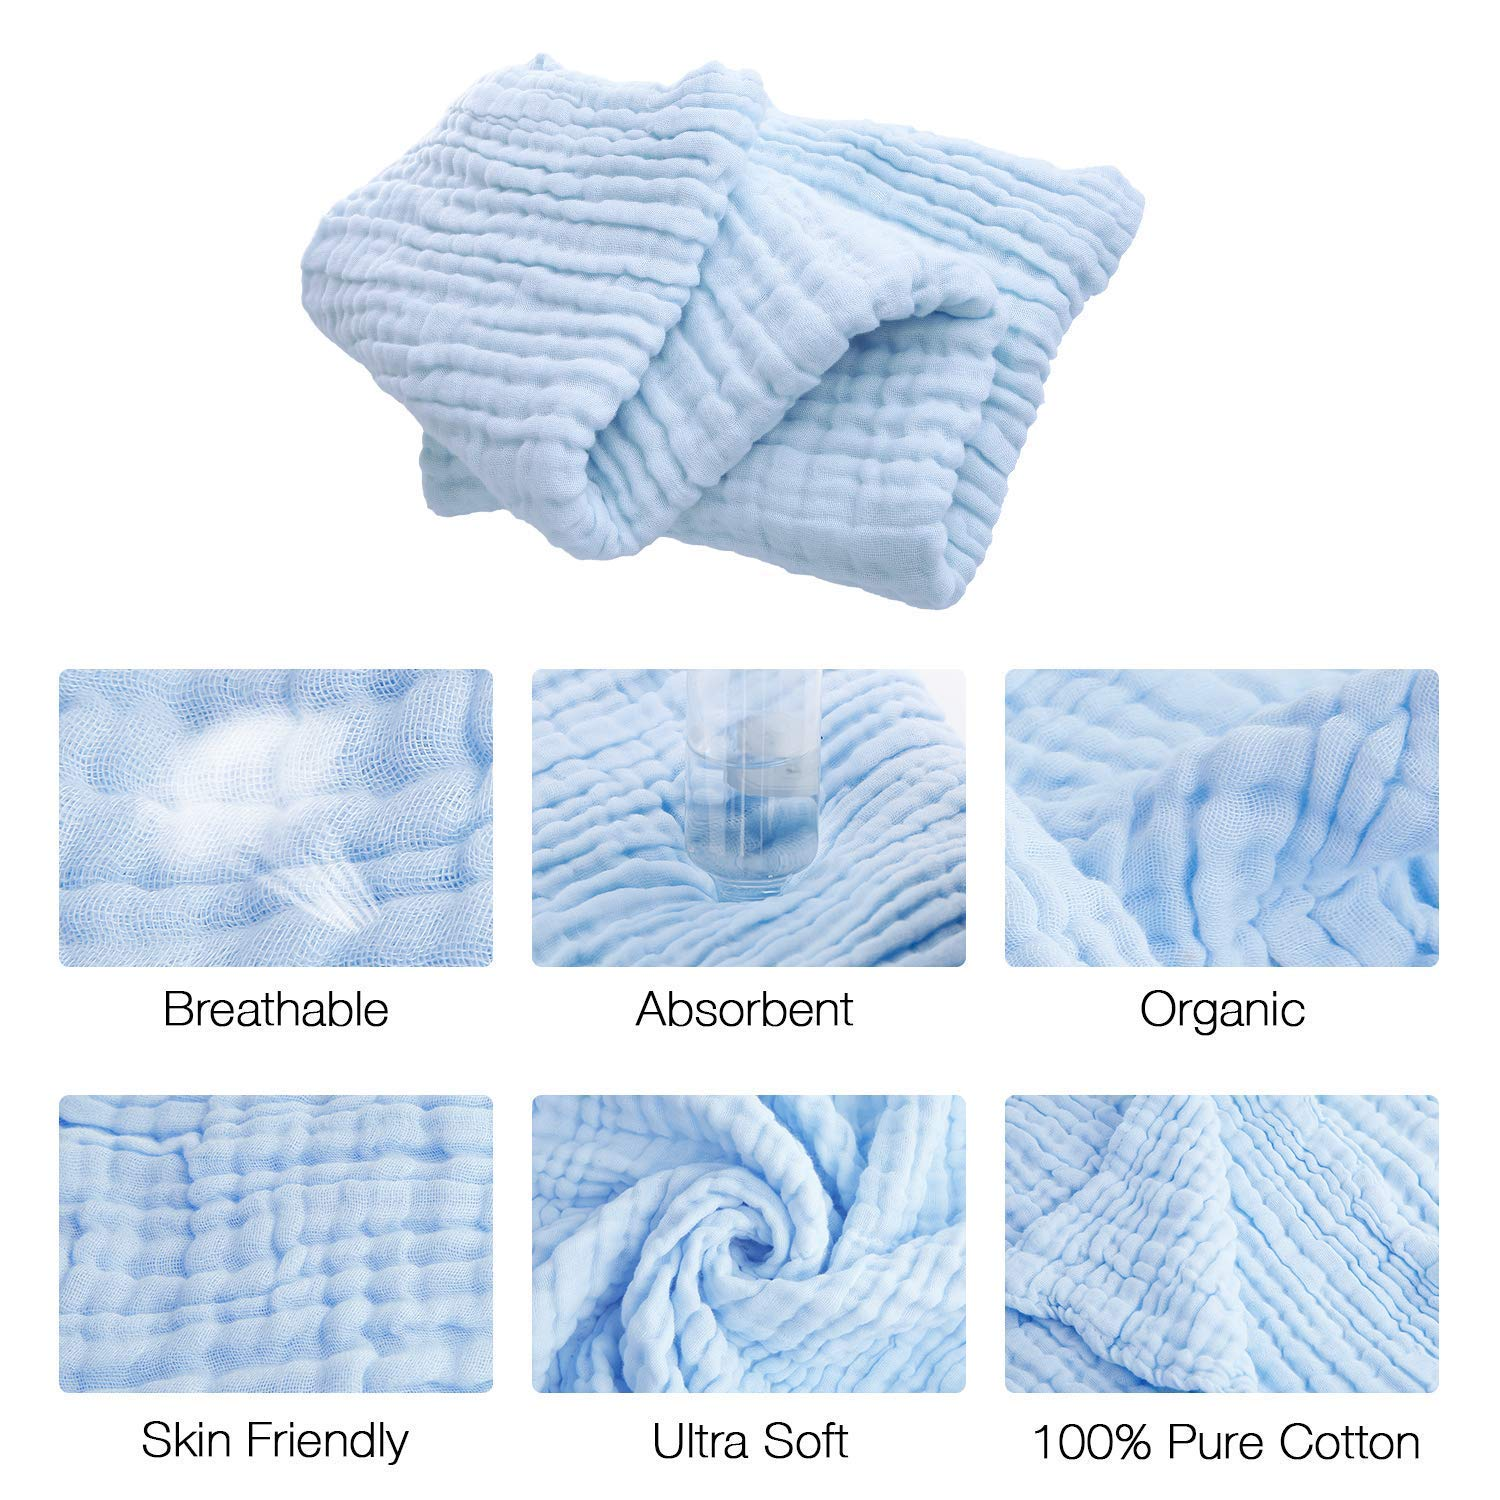 """AIMIUKIDS Muslin Baby Towel Washcloths Set-1 Large Infant Towels 43.3x43.3 /& 4 Washcloths Face Towel 11/""""x11/"""" 6 Layers Cotton Gauze Extra Soft,5 Pack Blue"""